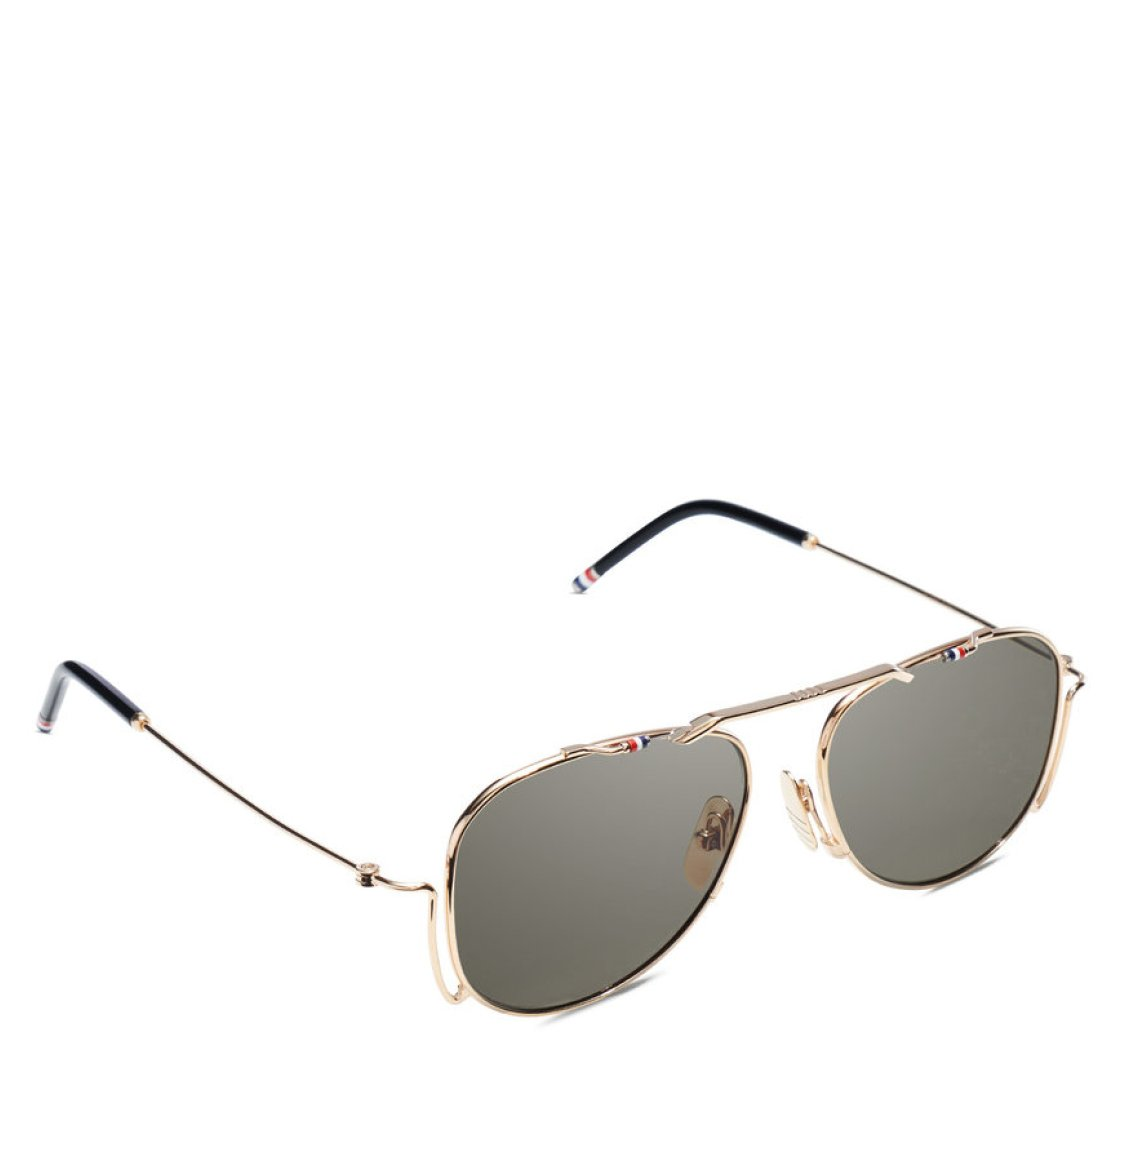 Thom Browne Black Iron White Gold Aviator Sunglasses Γυαλιά Ηλίου